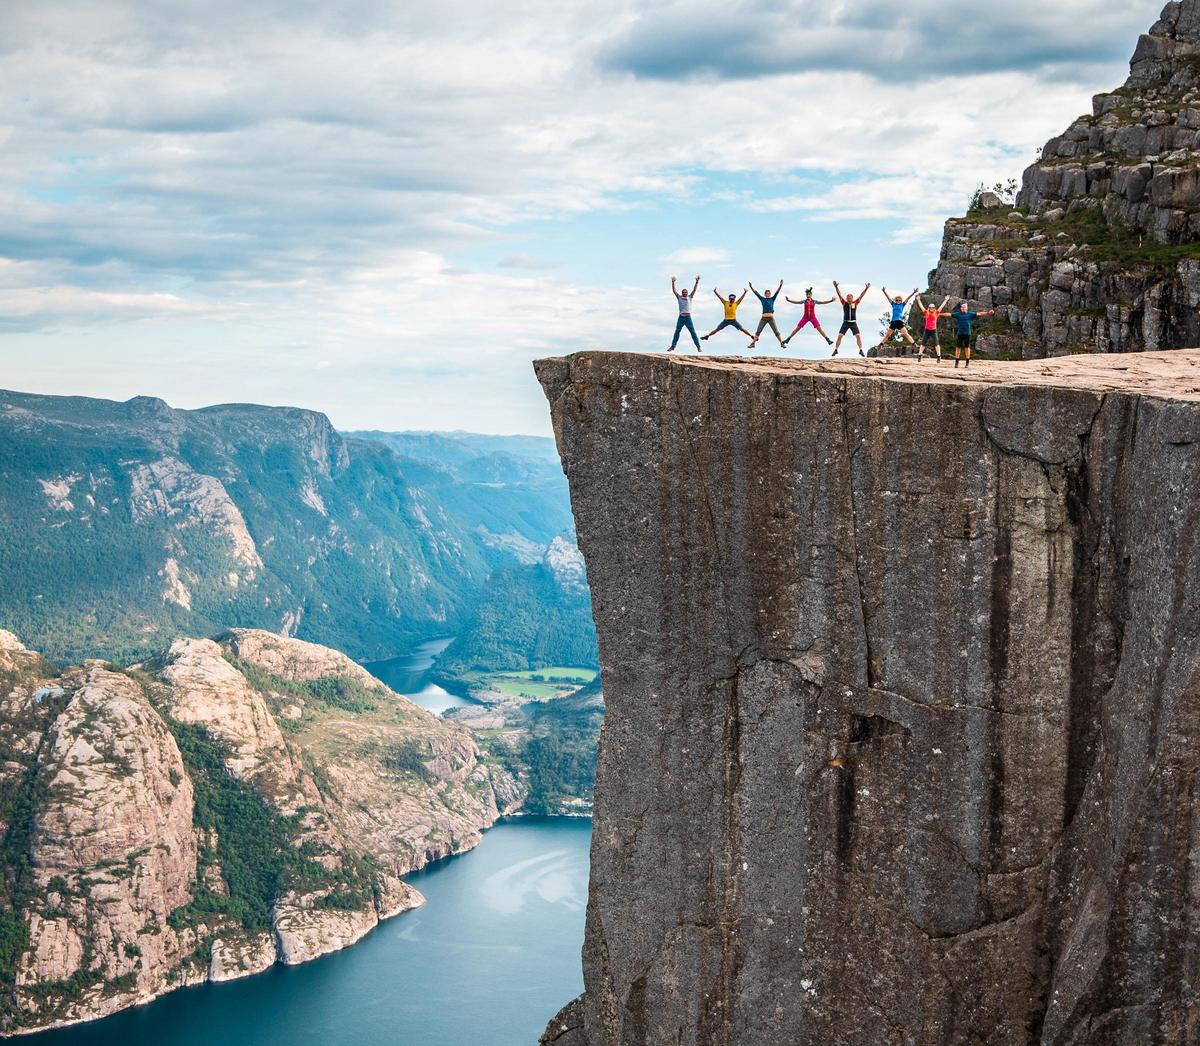 Mission Impossible Fallout Cast Location: Preikestolen in Norway